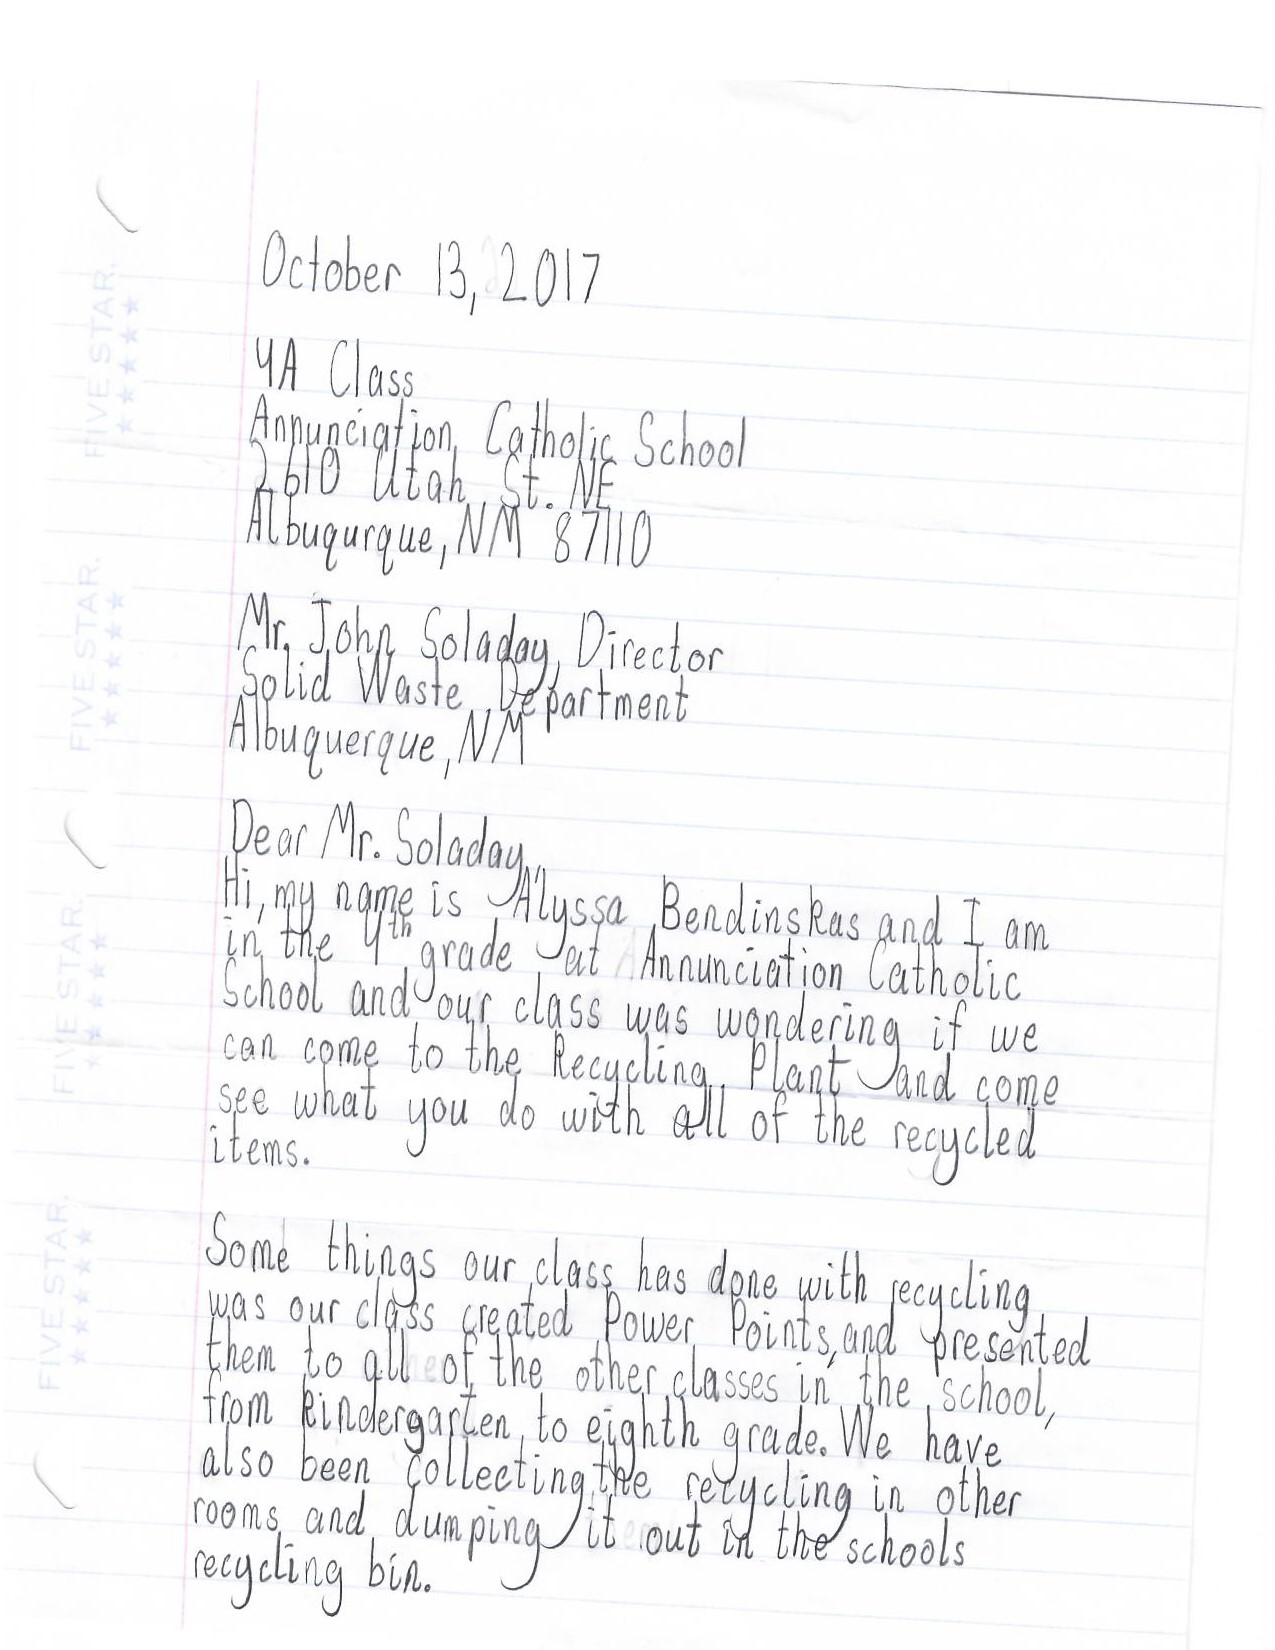 Letter from Annunciation Catholic School to Solid Waste Director John Soladay